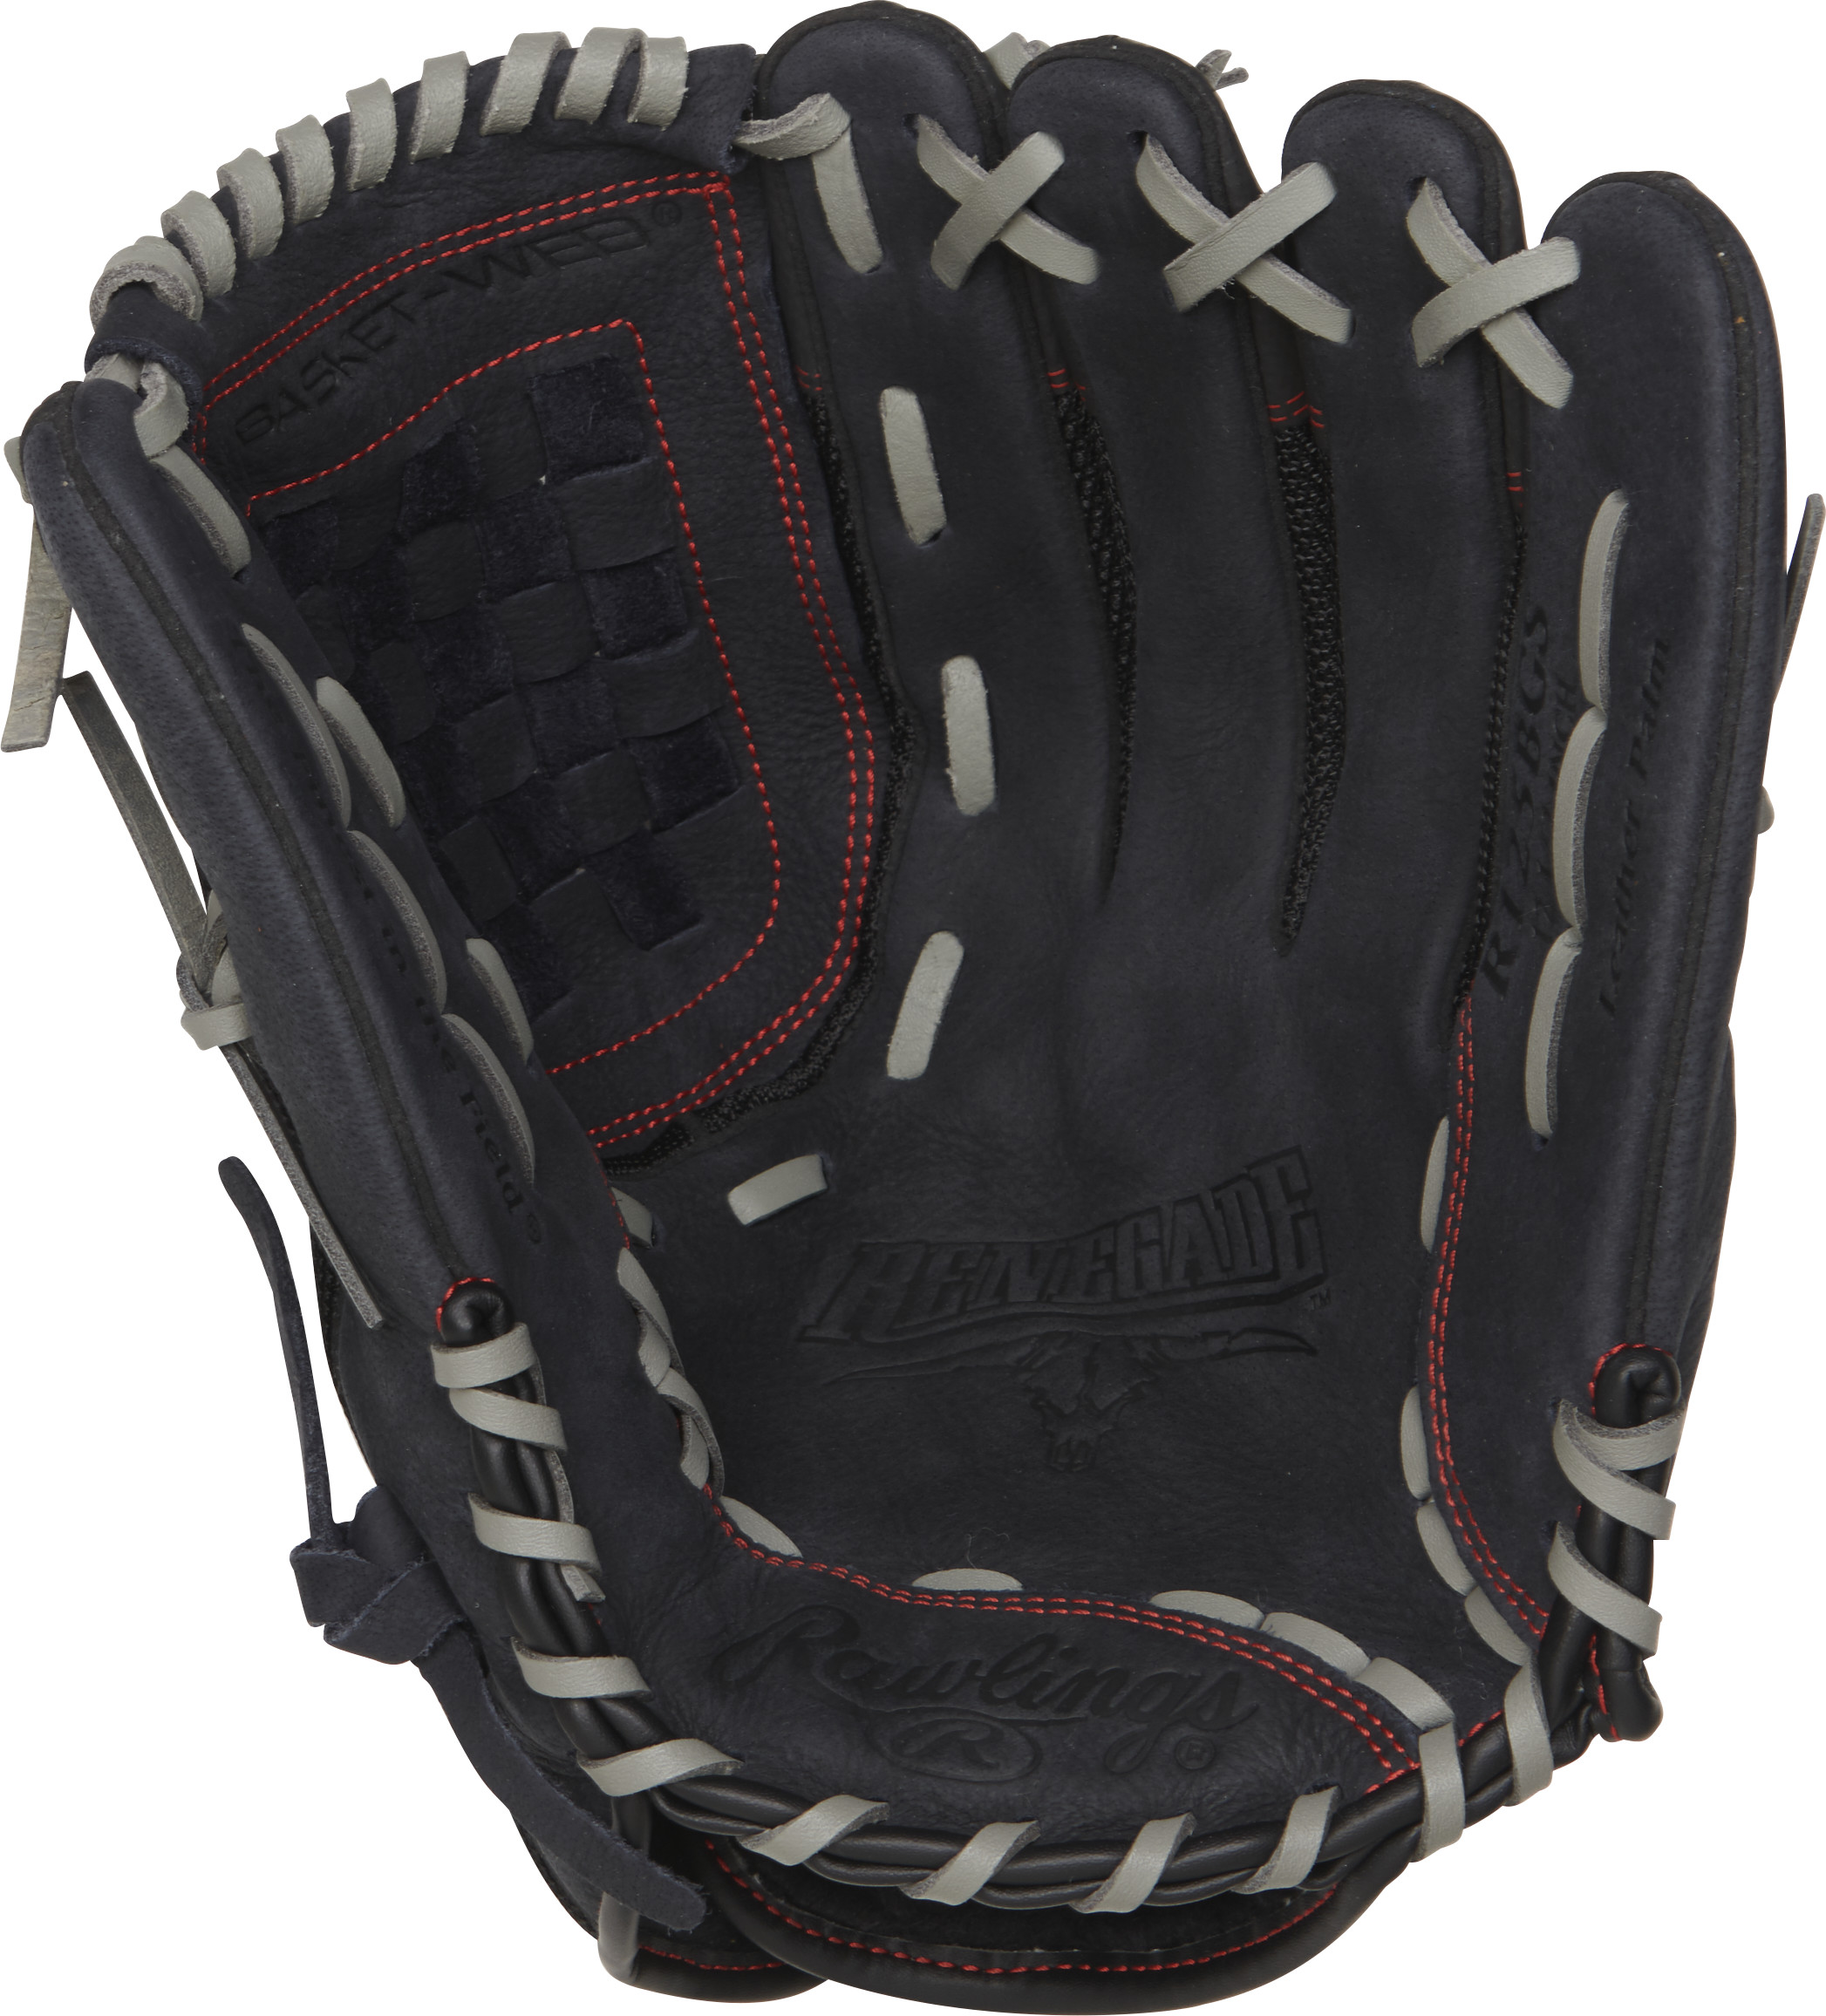 http://www.bestbatdeals.com/images/gloves/rawlings/R125BGS-1.jpg